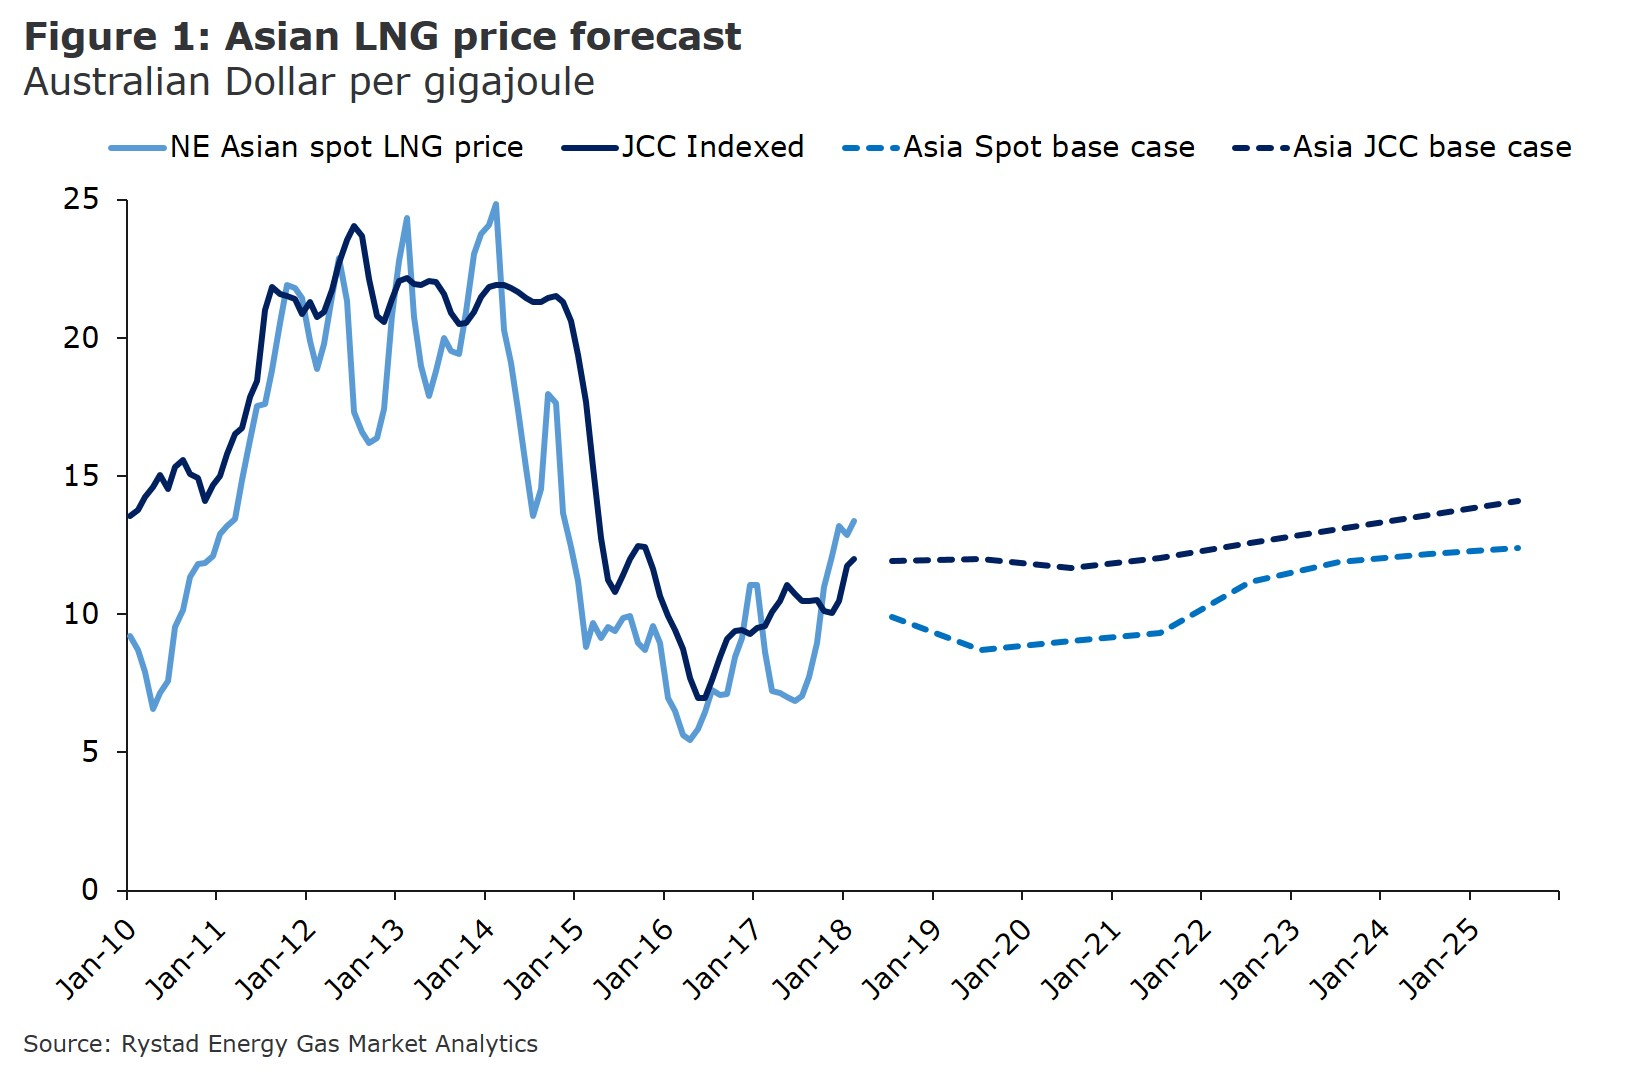 Figure 1: A graph showing the Asian LNG price forecast in Australian dollar per gigajoule from 2010 to 2025. Source: Rystad Energy Gas Market Analytics